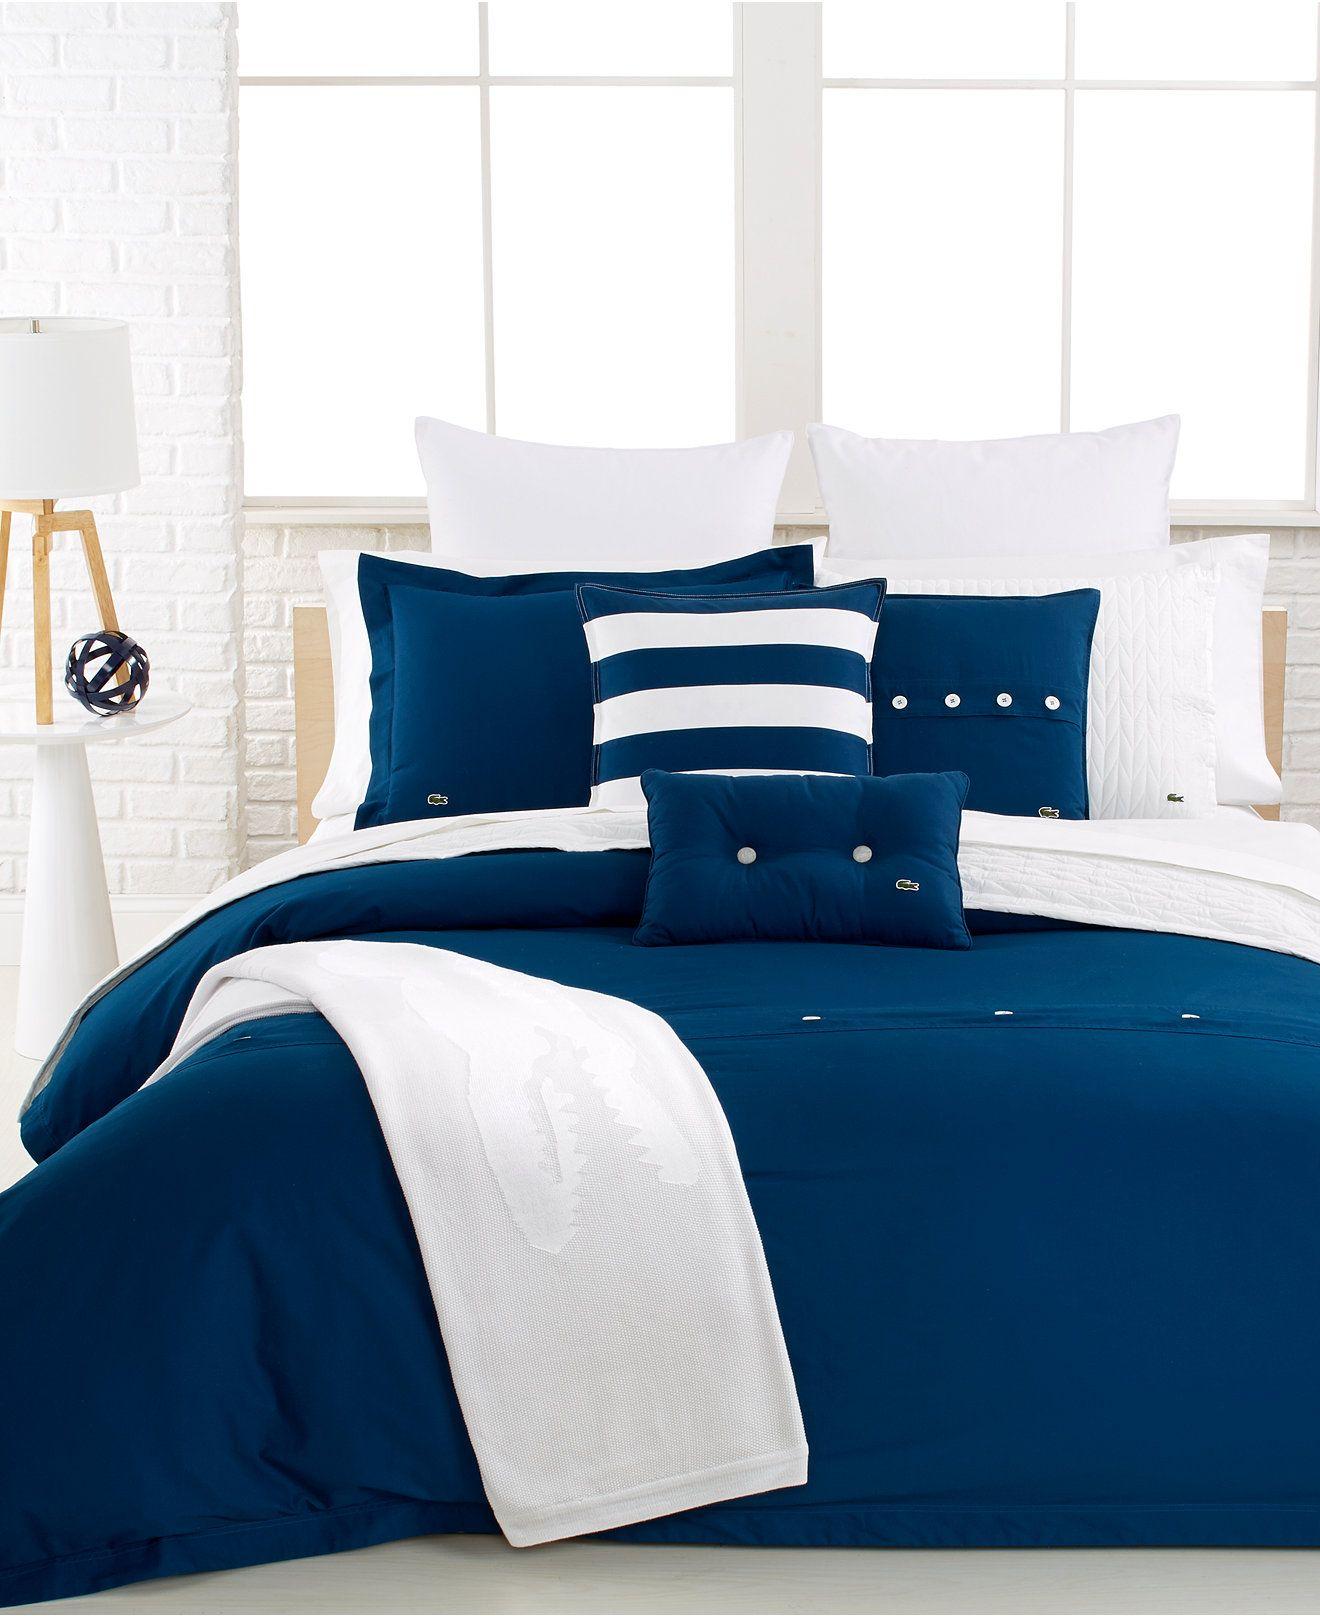 aluminum stripe bedspread herringbone low count duvet bedroom duvets king flannel damask queen lacoste quilted serta voltage charter electric cal club thread cover